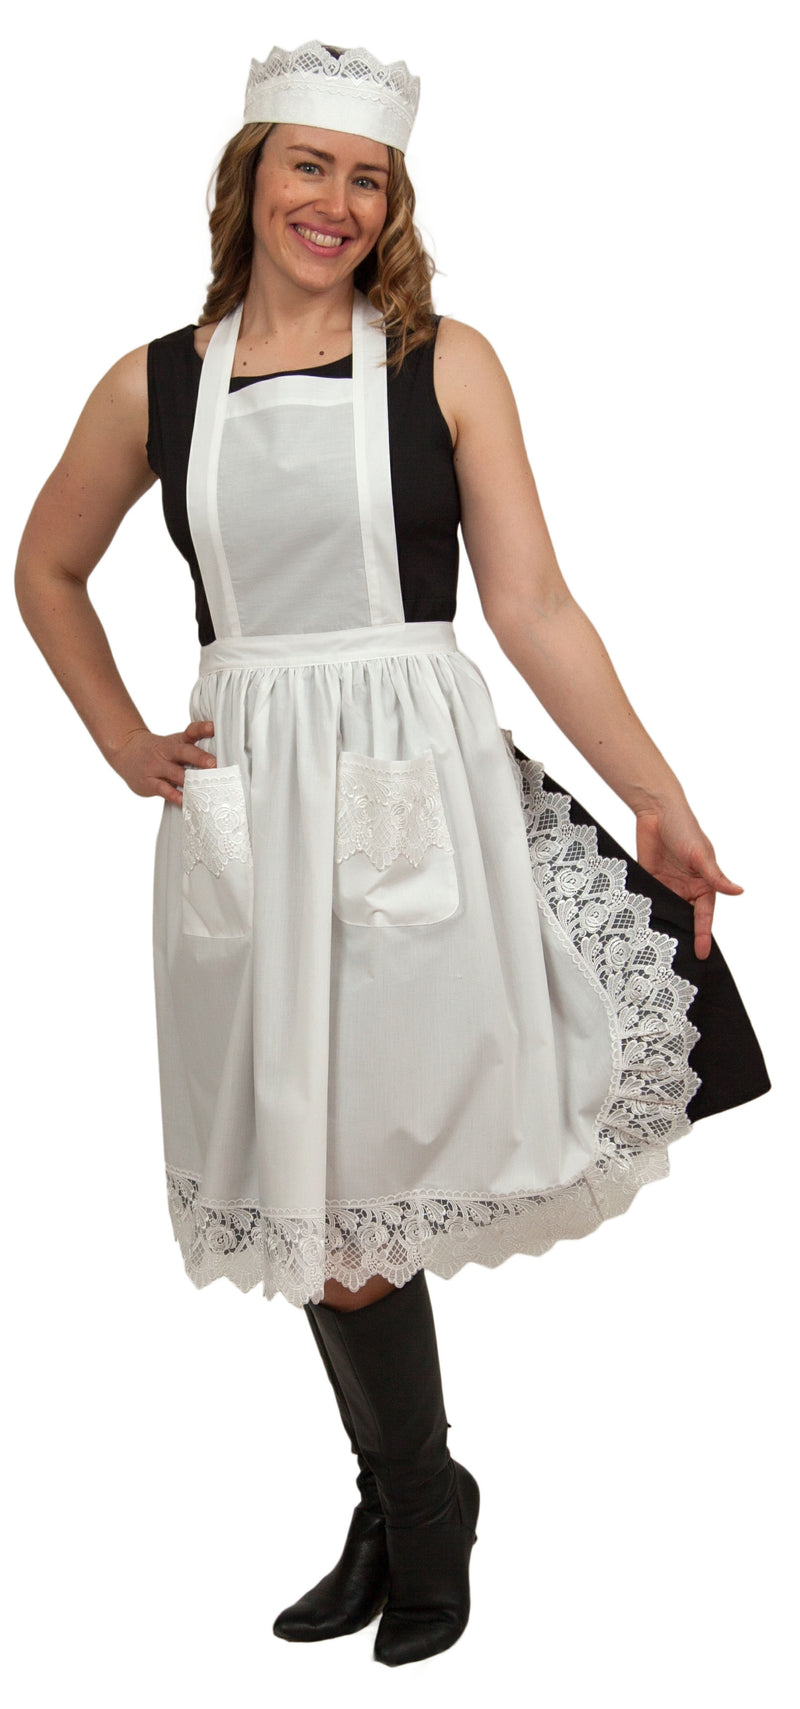 Maid Costume inches White Lace Headband & Adult Full Lace Apron Costume - Apparel- Aprons, Apparel-Kitchenware, CT-700, Hats, Lace